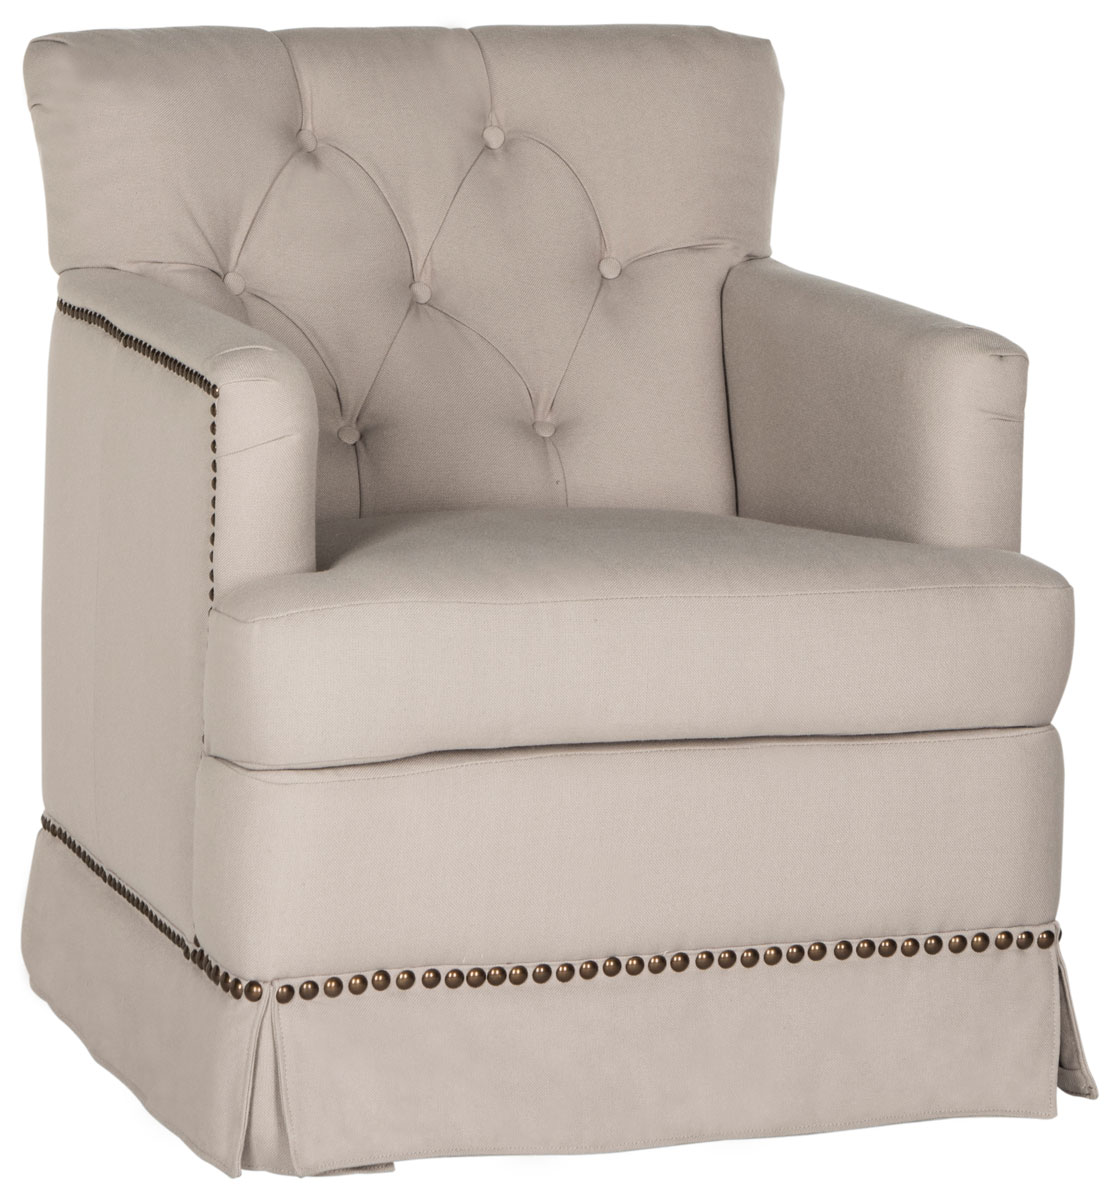 Swivel Armchair | Accent Chairs Collection - Safavieh.com